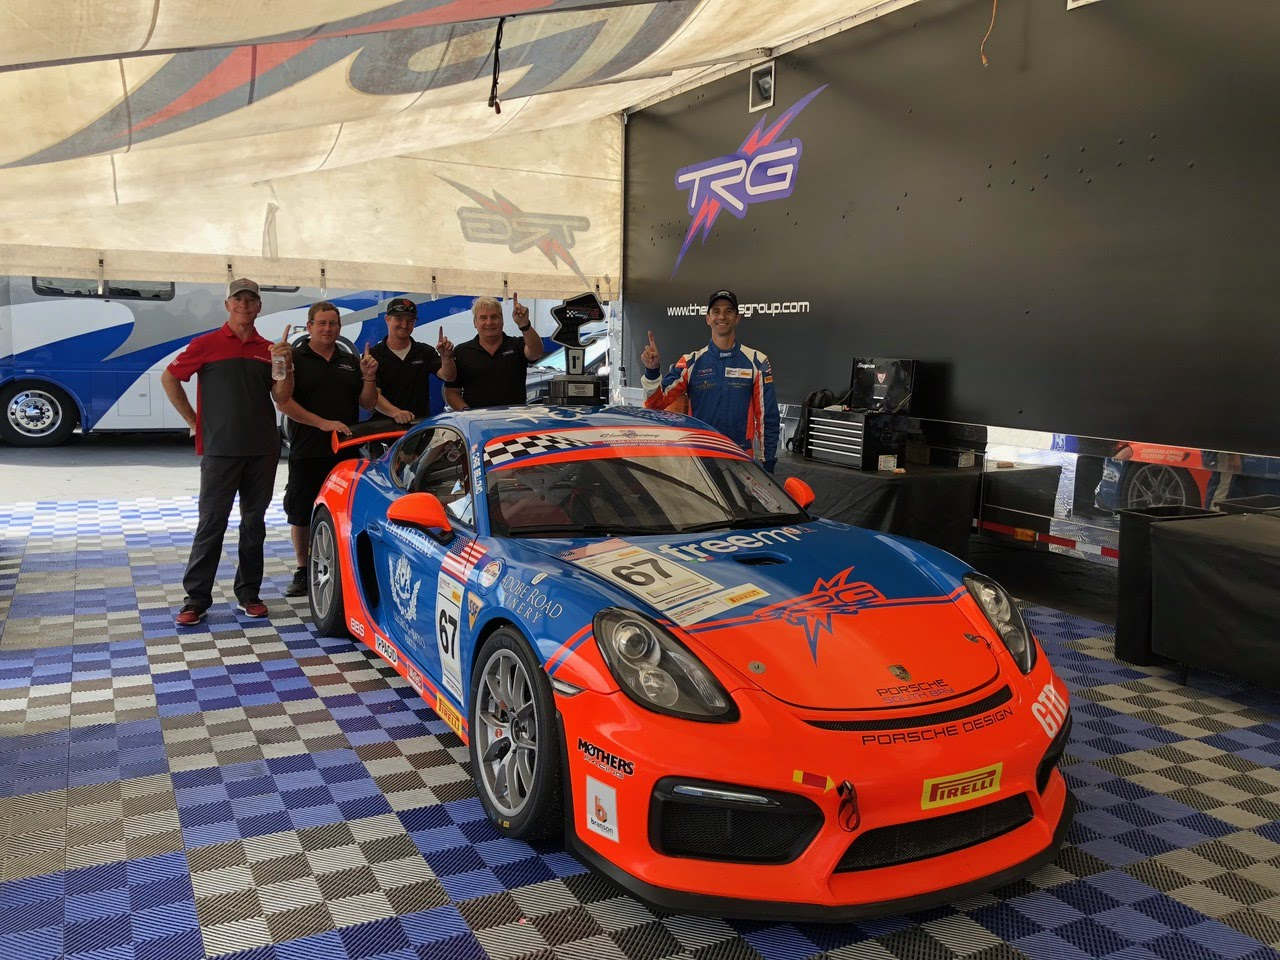 Chris Bellomo and team at Rennsport Reunion VI